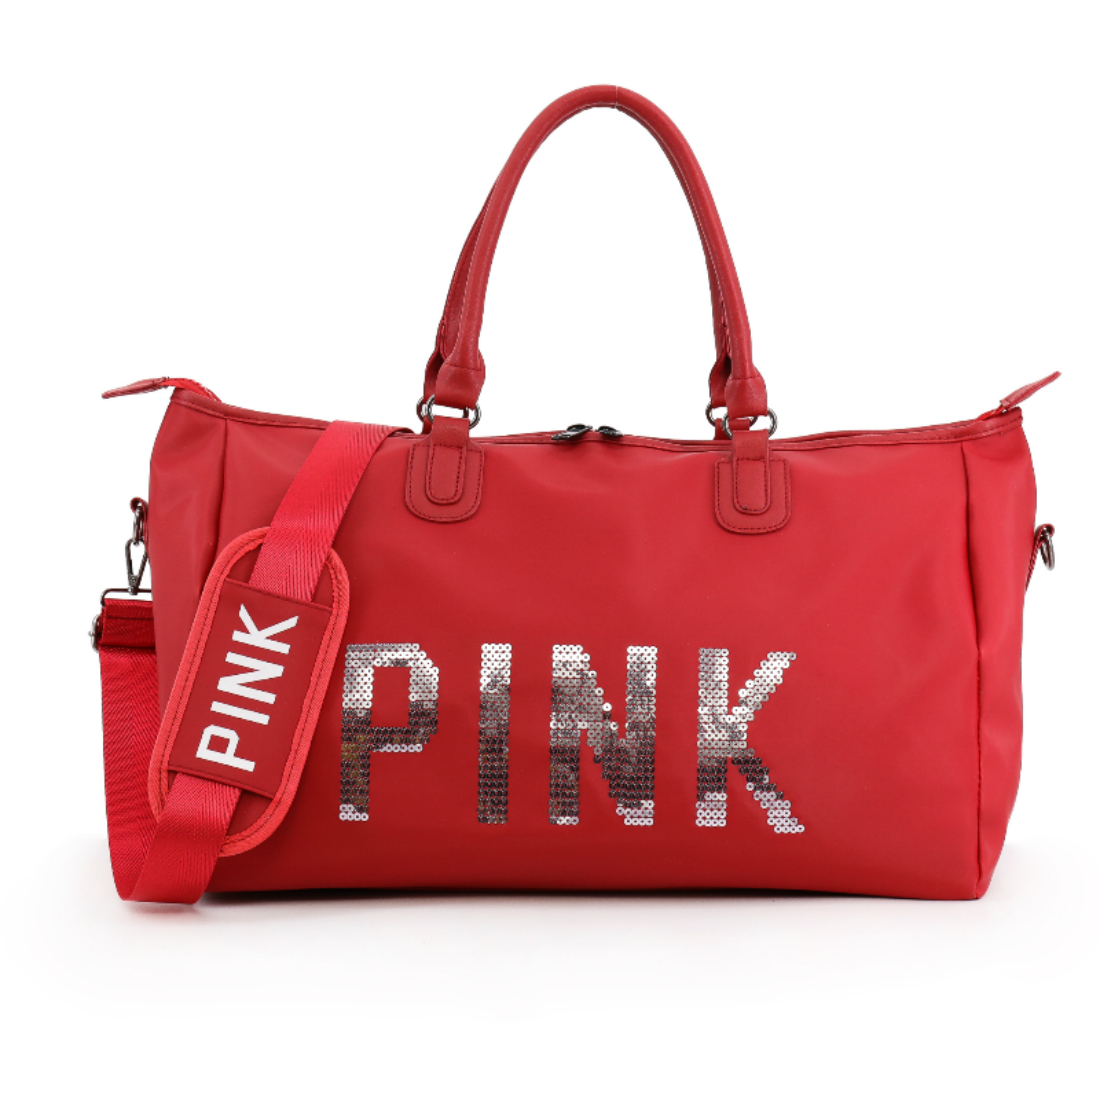 2018 New Large Capacity Tote sports Bag Red Duffle Bag Victoria gym Bag Secret Weekend Vs Pink Print Handbags for Women ...